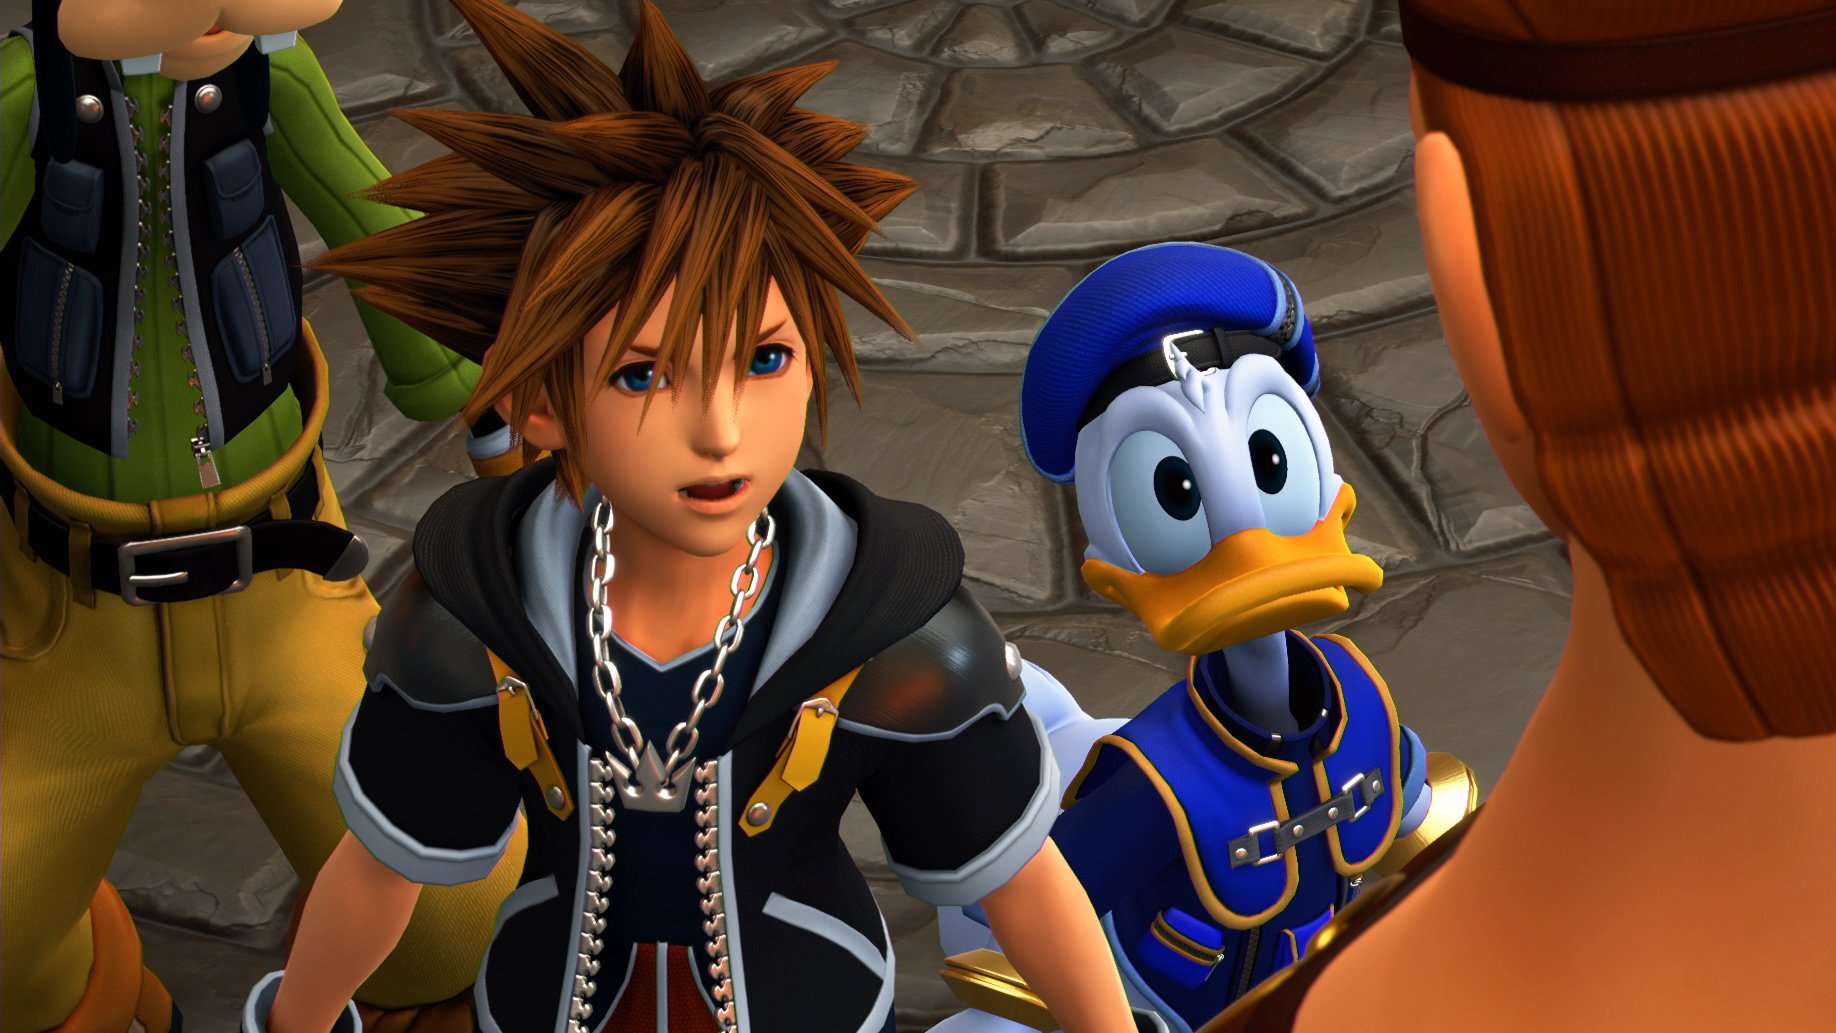 IS Kingdom Hearts 3 coming to the Nintendo Switch